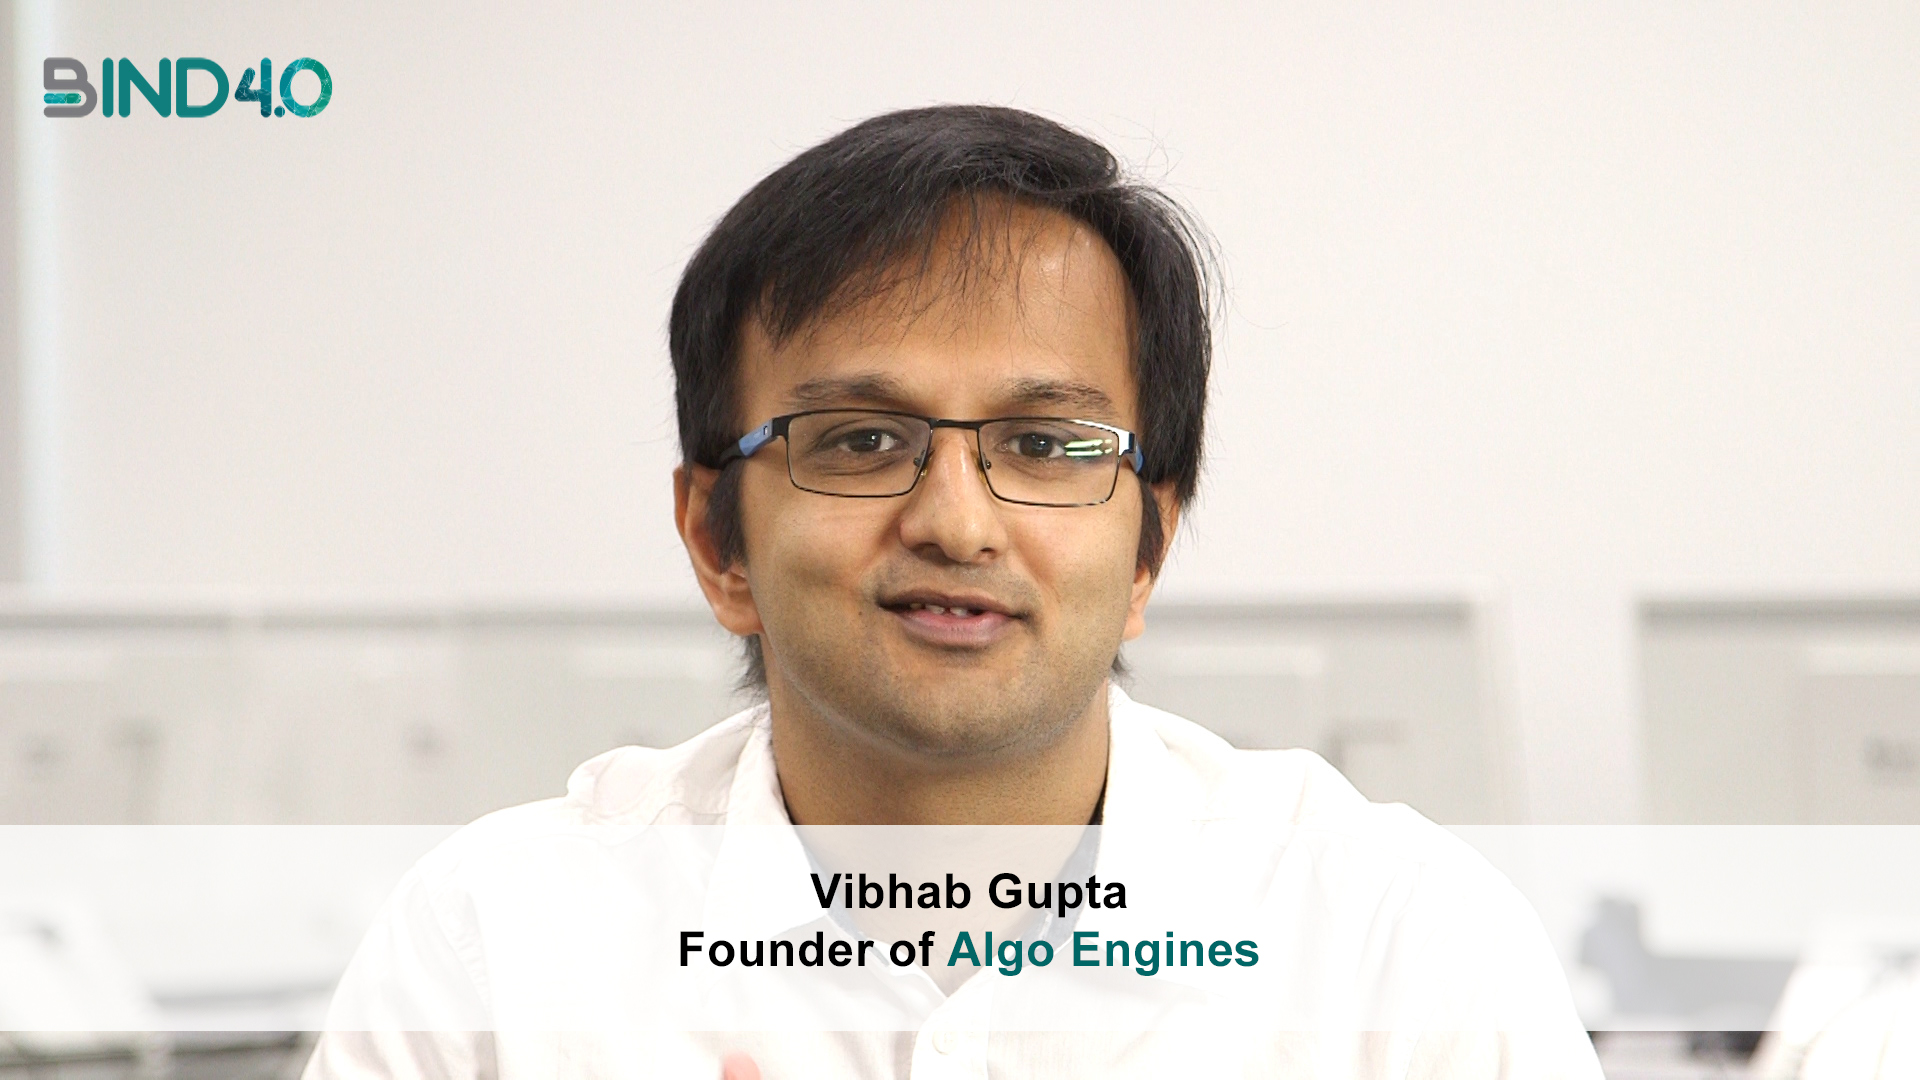 Vibhav_Gupta_Algo_Engines_We_increase_the_efficiency_of_energy_generation_assets